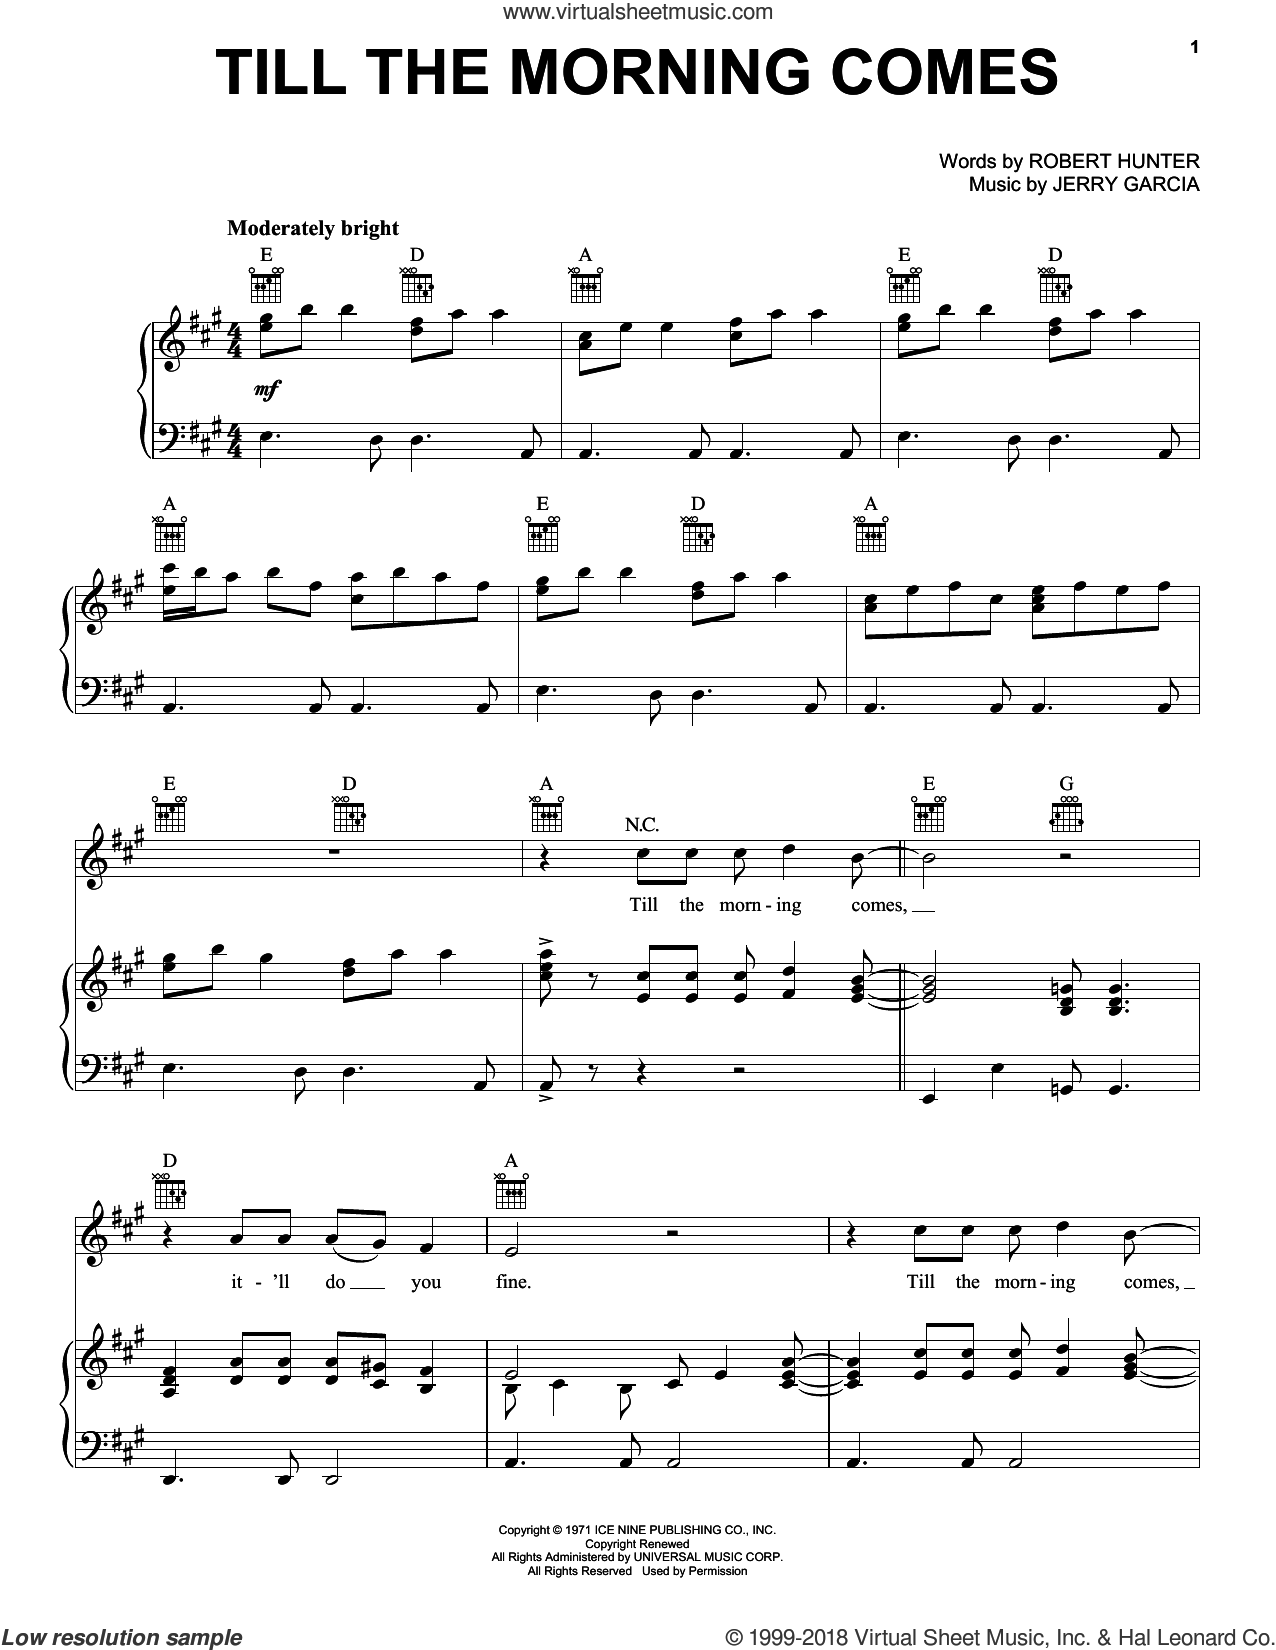 Till The Morning Comes sheet music for voice, piano or guitar by Grateful Dead, Jerry Garcia and Robert Hunter, intermediate skill level